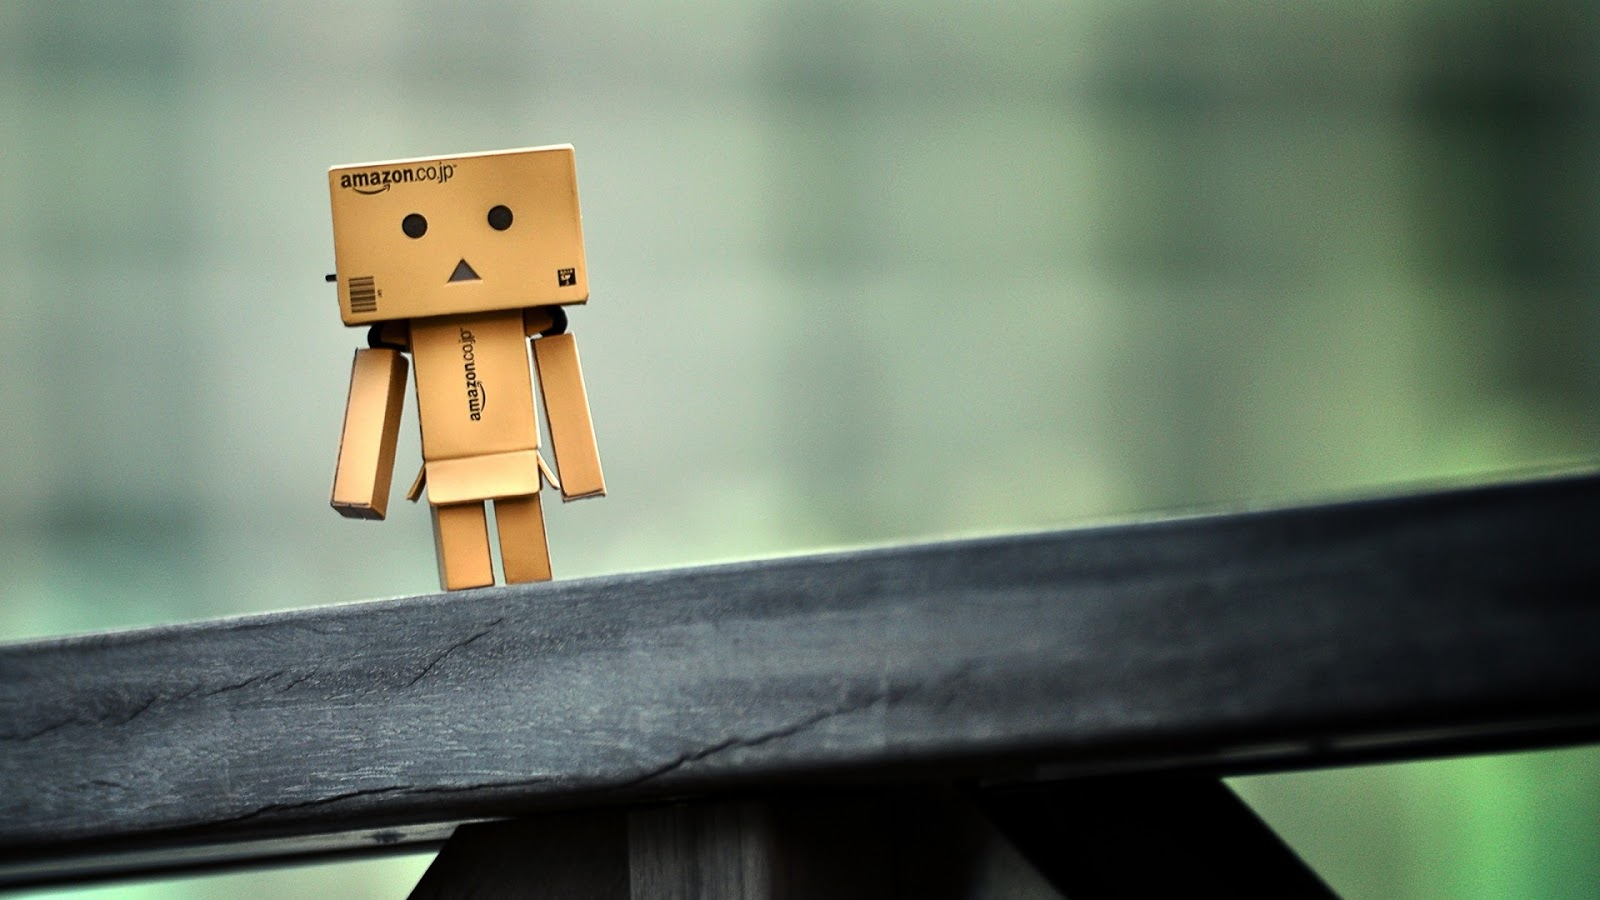 danboard wallpapers 28 hd - photo #8